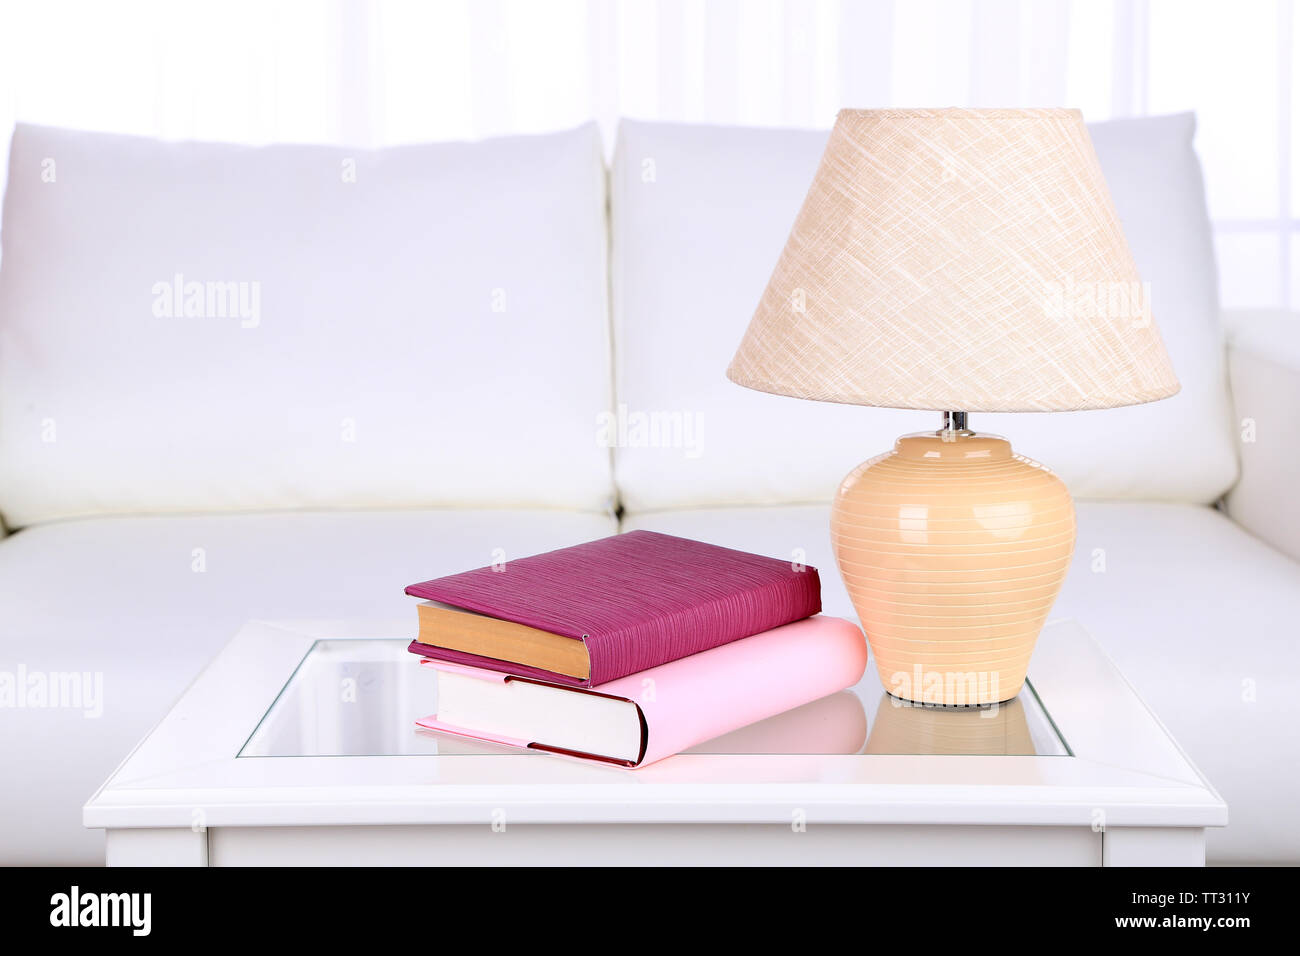 Books and lamp on coffee table in room - Stock Image